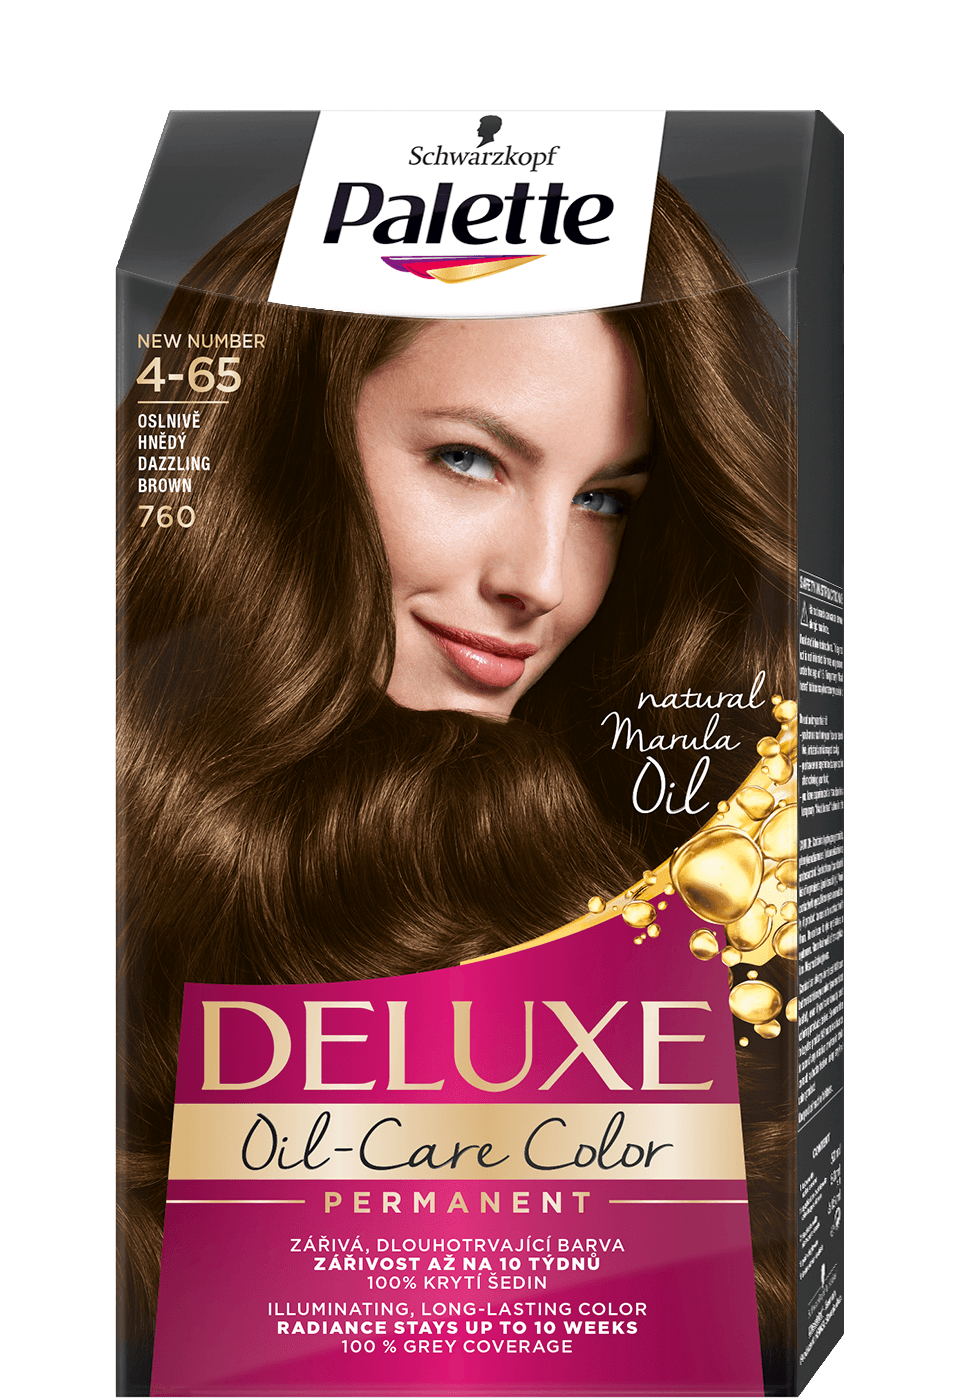 palette_com_deluxe_baseline_4-65_dazzling_brown_970x1400